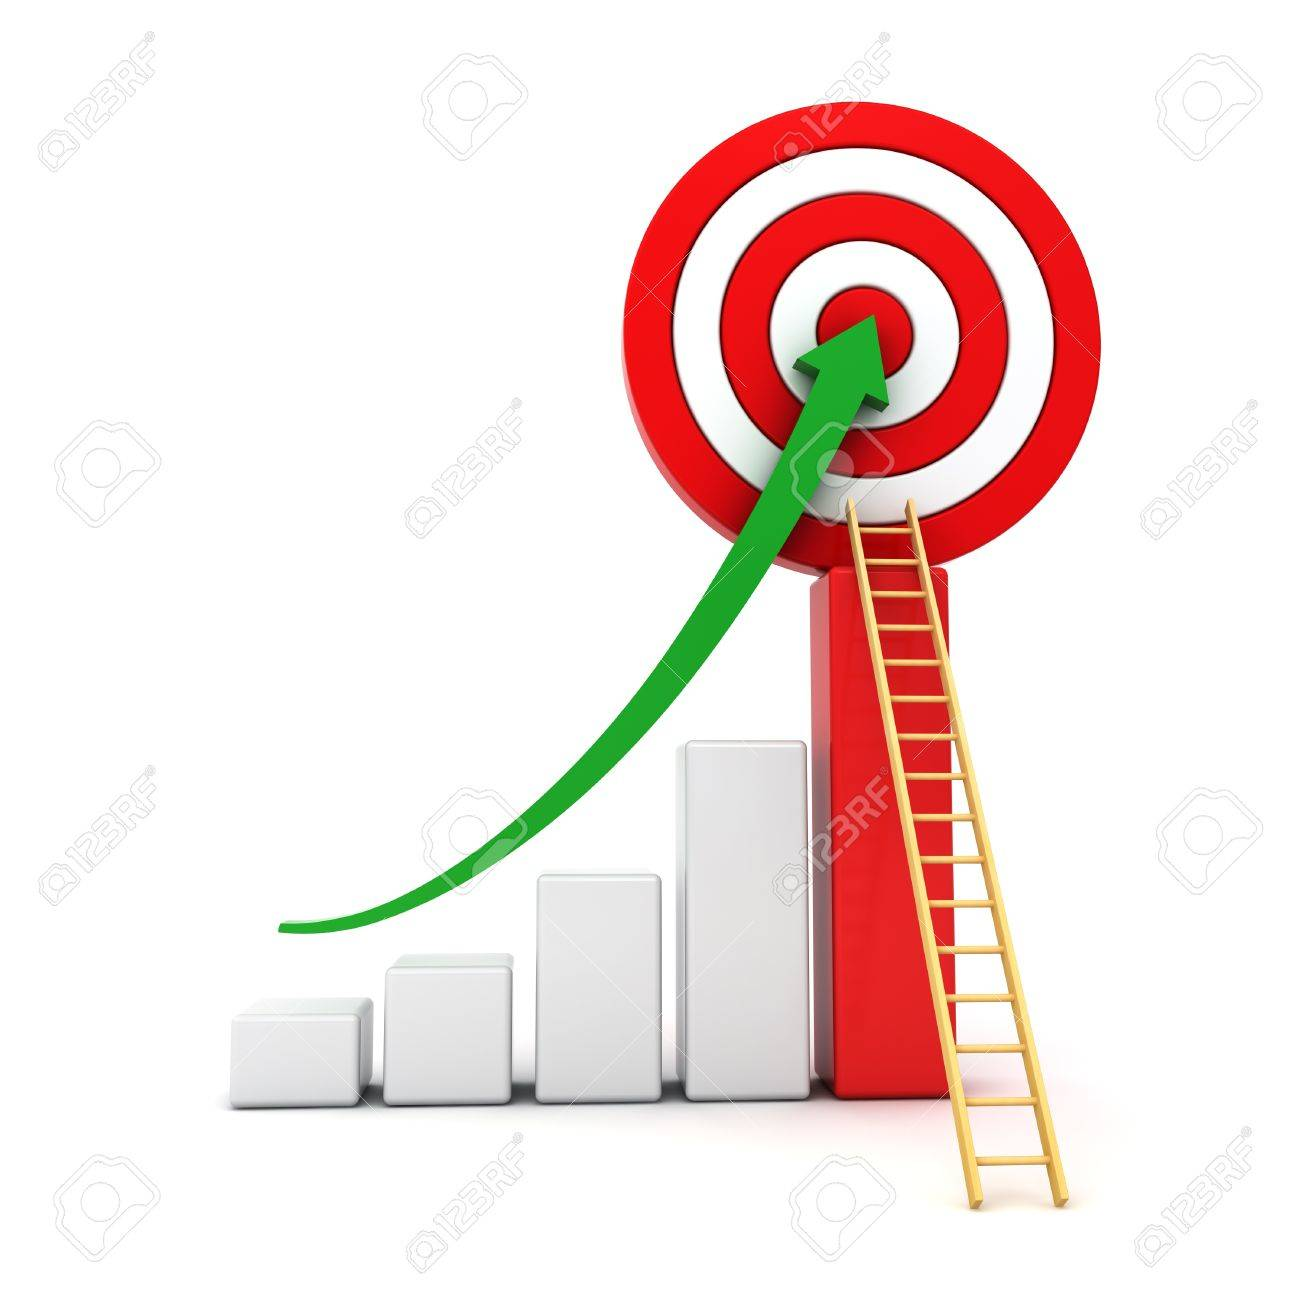 business graph green rising arrow moving up to the center business graph green rising arrow moving up to the center of red target wood